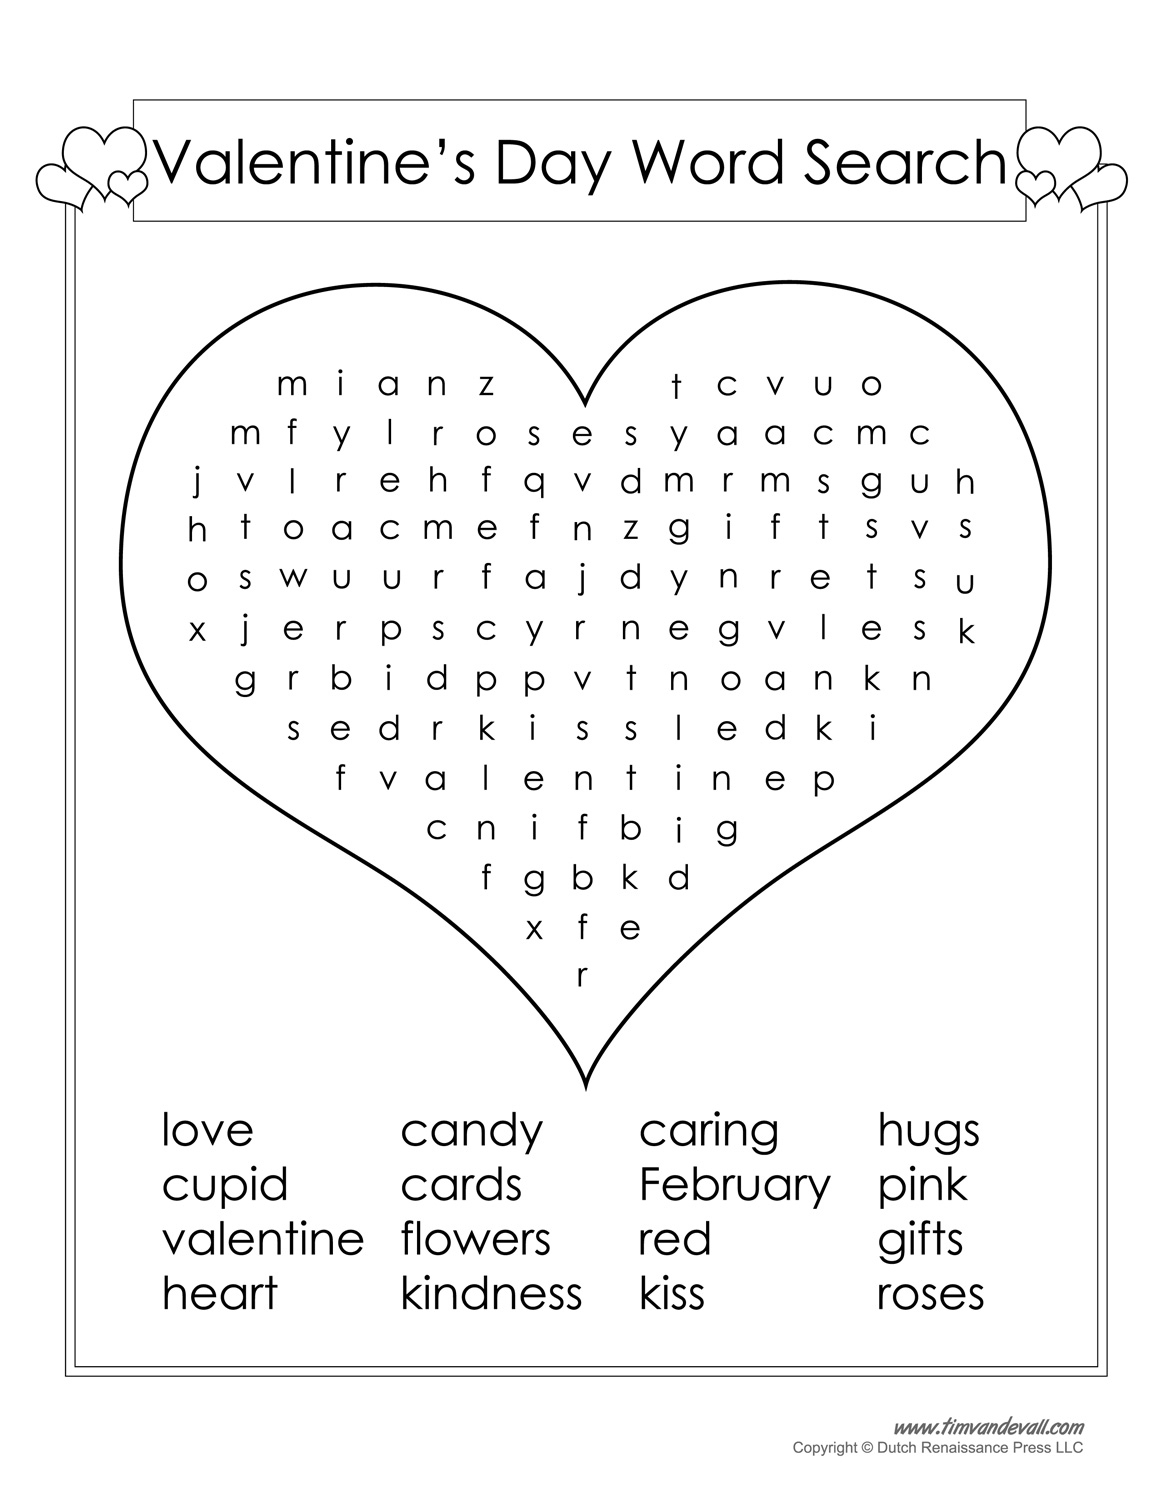 12 Valentine's Day Word Search | Kittybabylove - Free Printable Valentine Puzzles For Adults